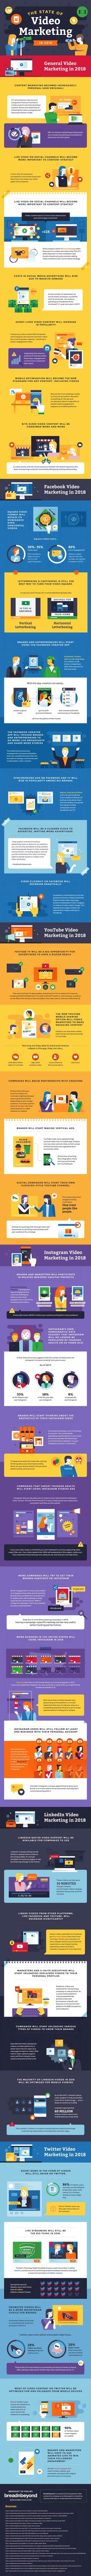 20 social media video marketing trends for 2018 infographic